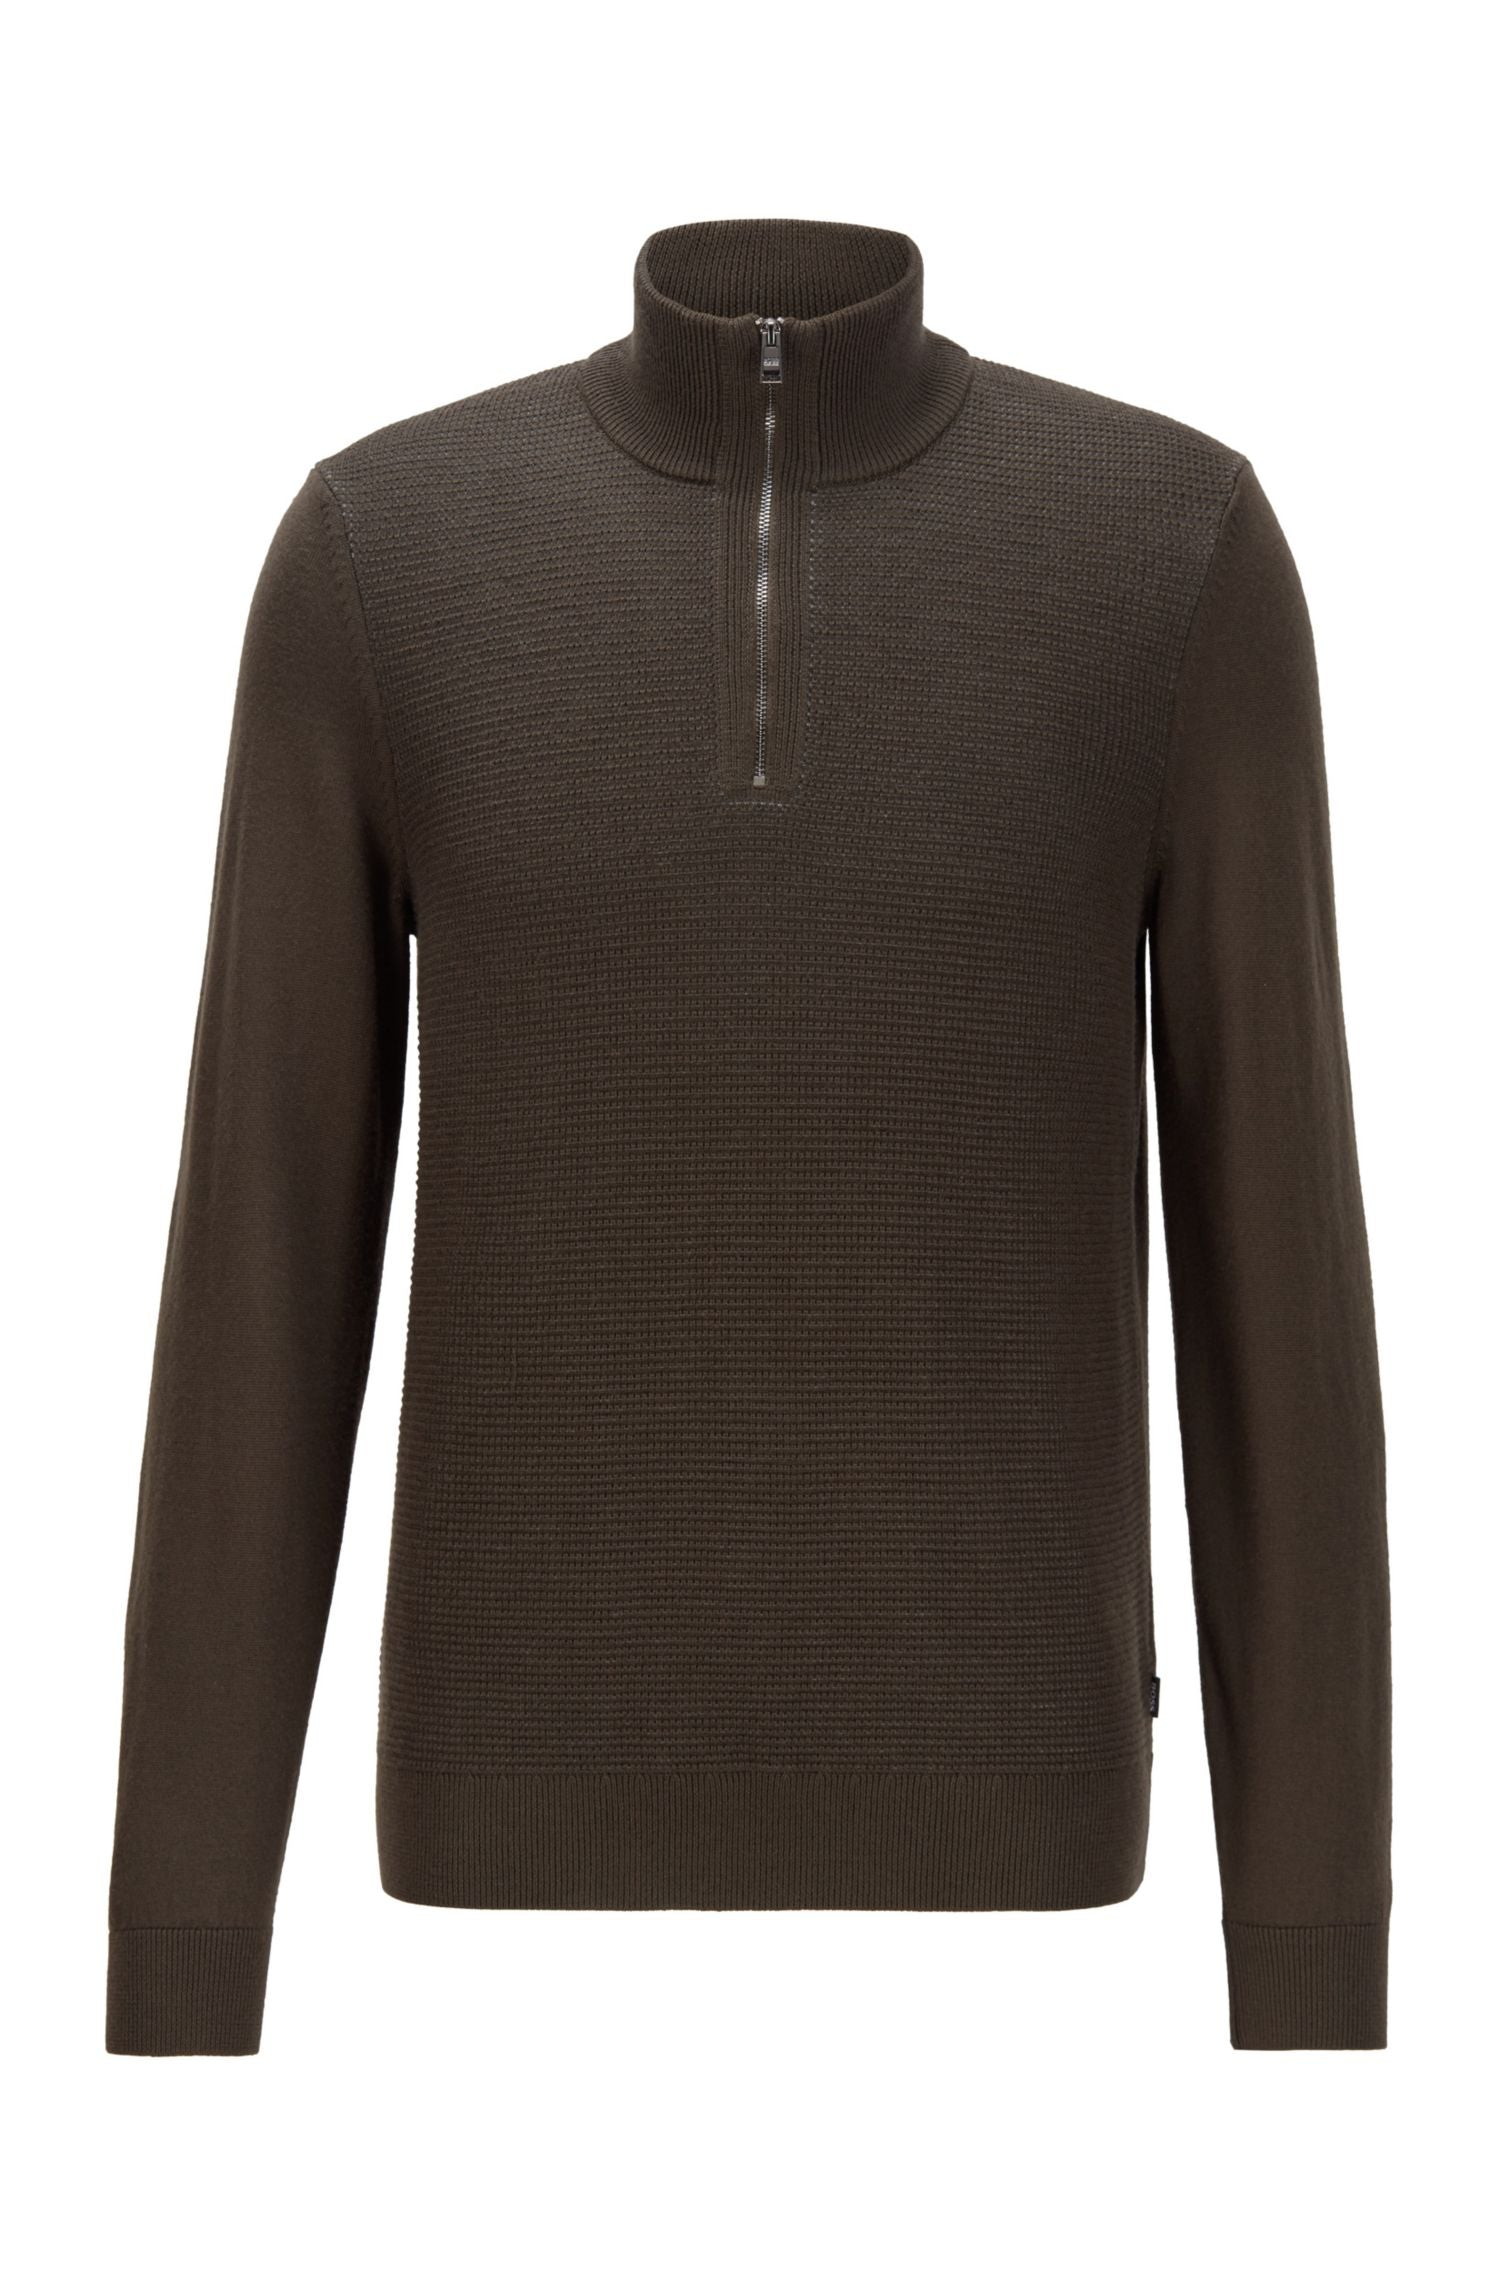 Hugo Boss - MADAN Khaki Green Zip-Neck Sweater In Virgin Wool & Cotton 50435244